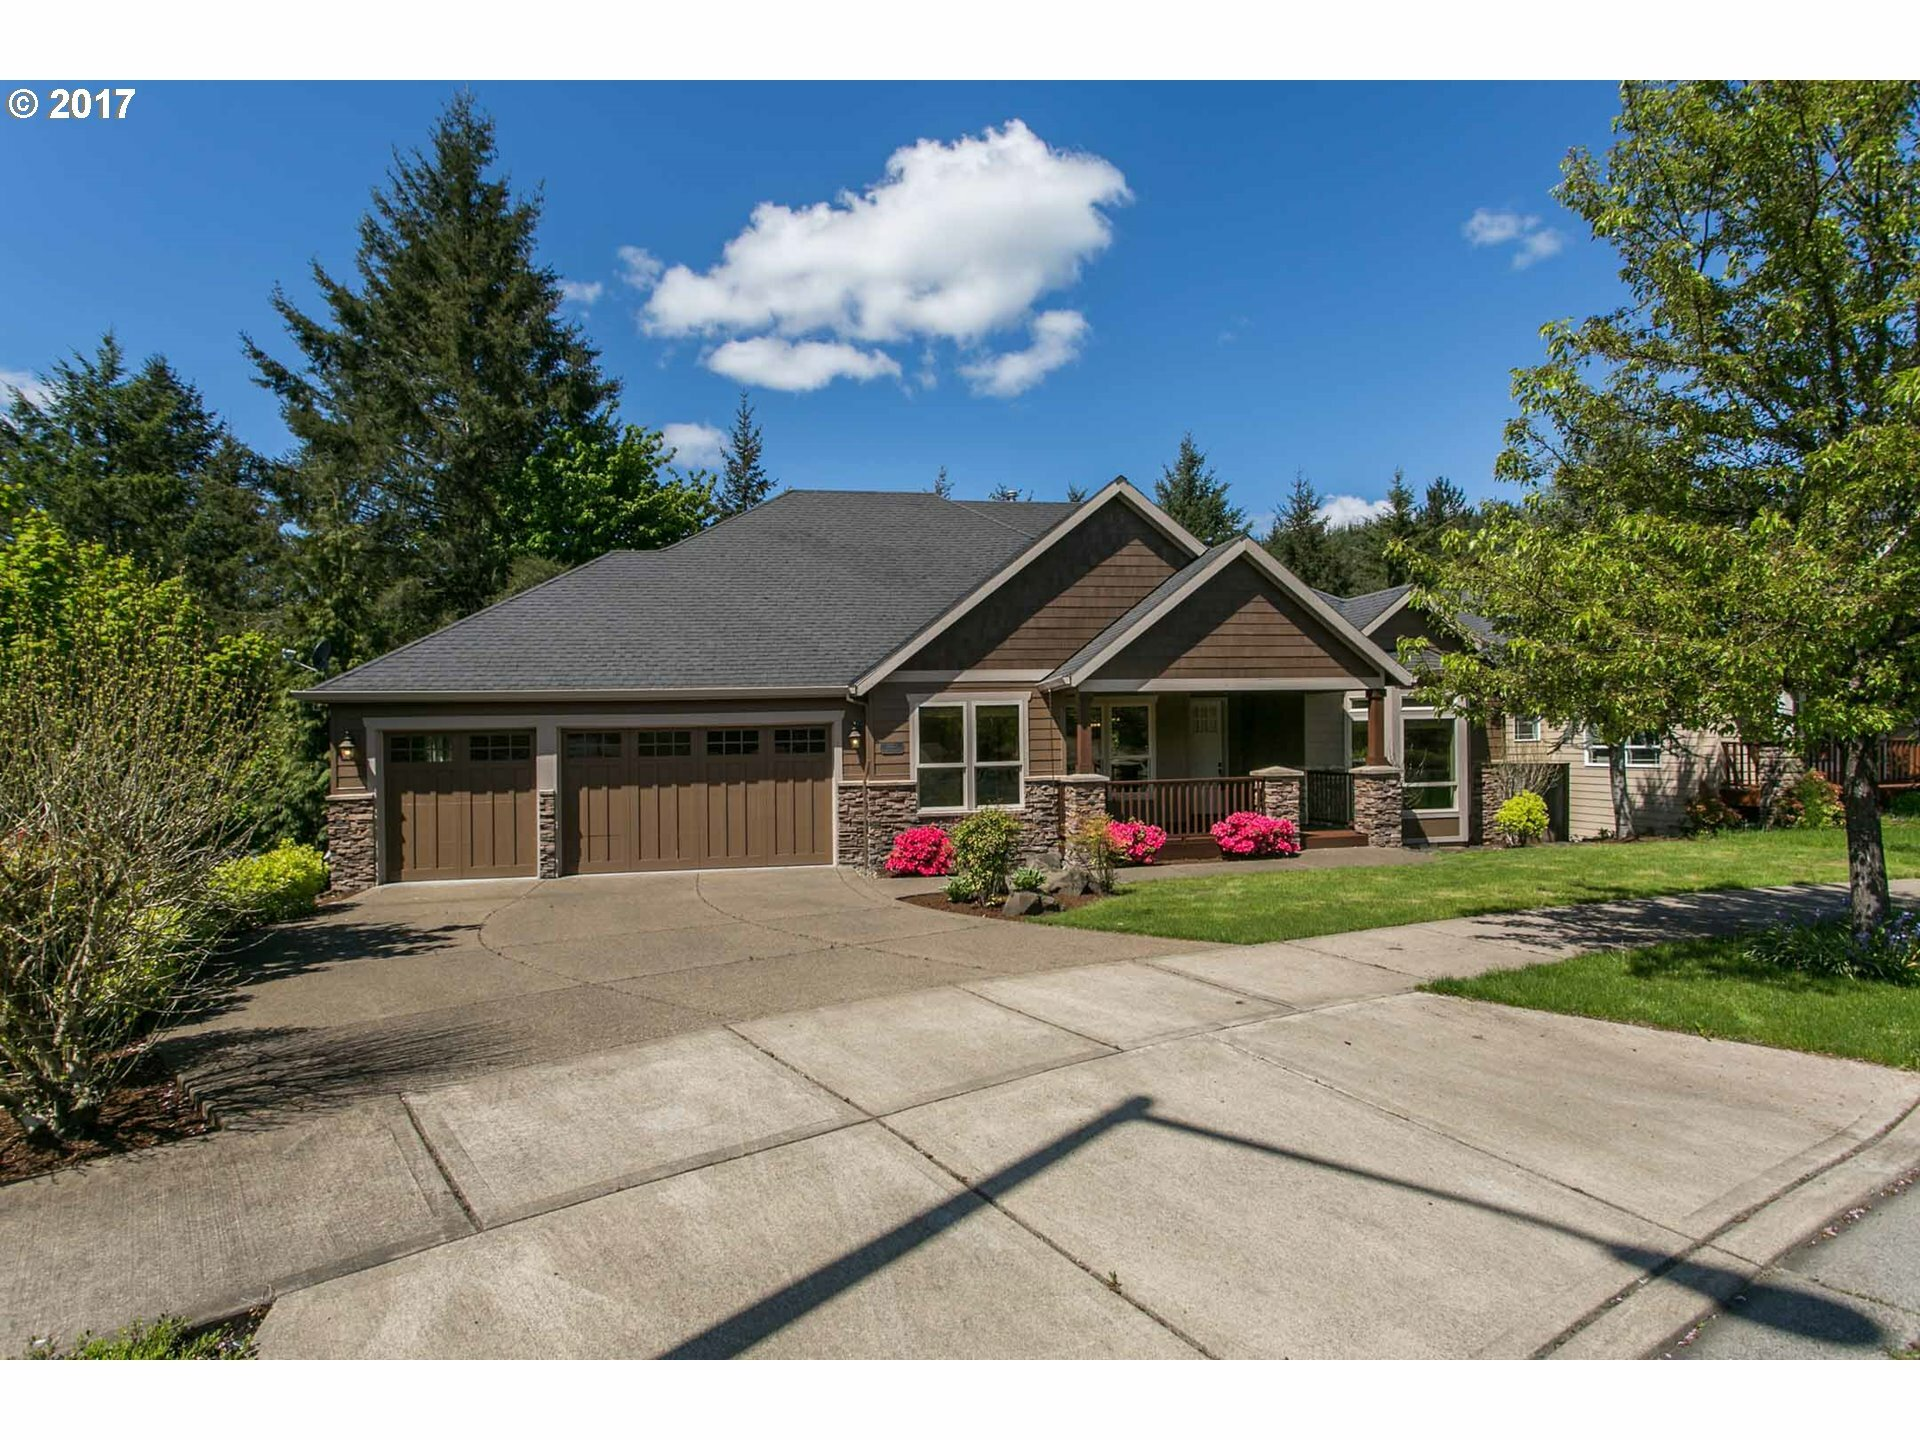 3522 Summit Pointe Ct, Forest Grove, OR - USA (photo 2)